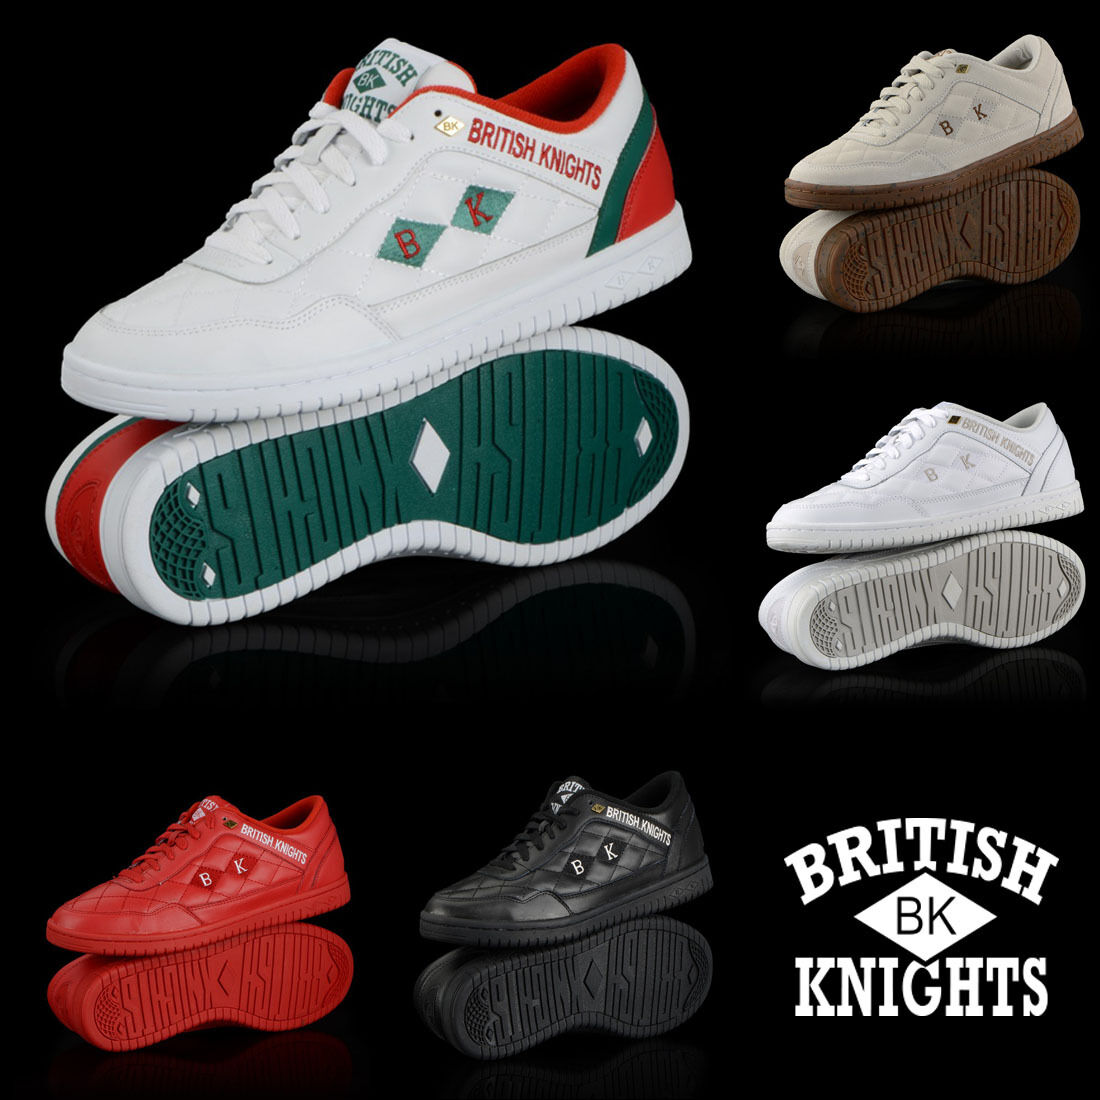 new authentic british knights quilts 5 colors low top shoes ebay. Black Bedroom Furniture Sets. Home Design Ideas